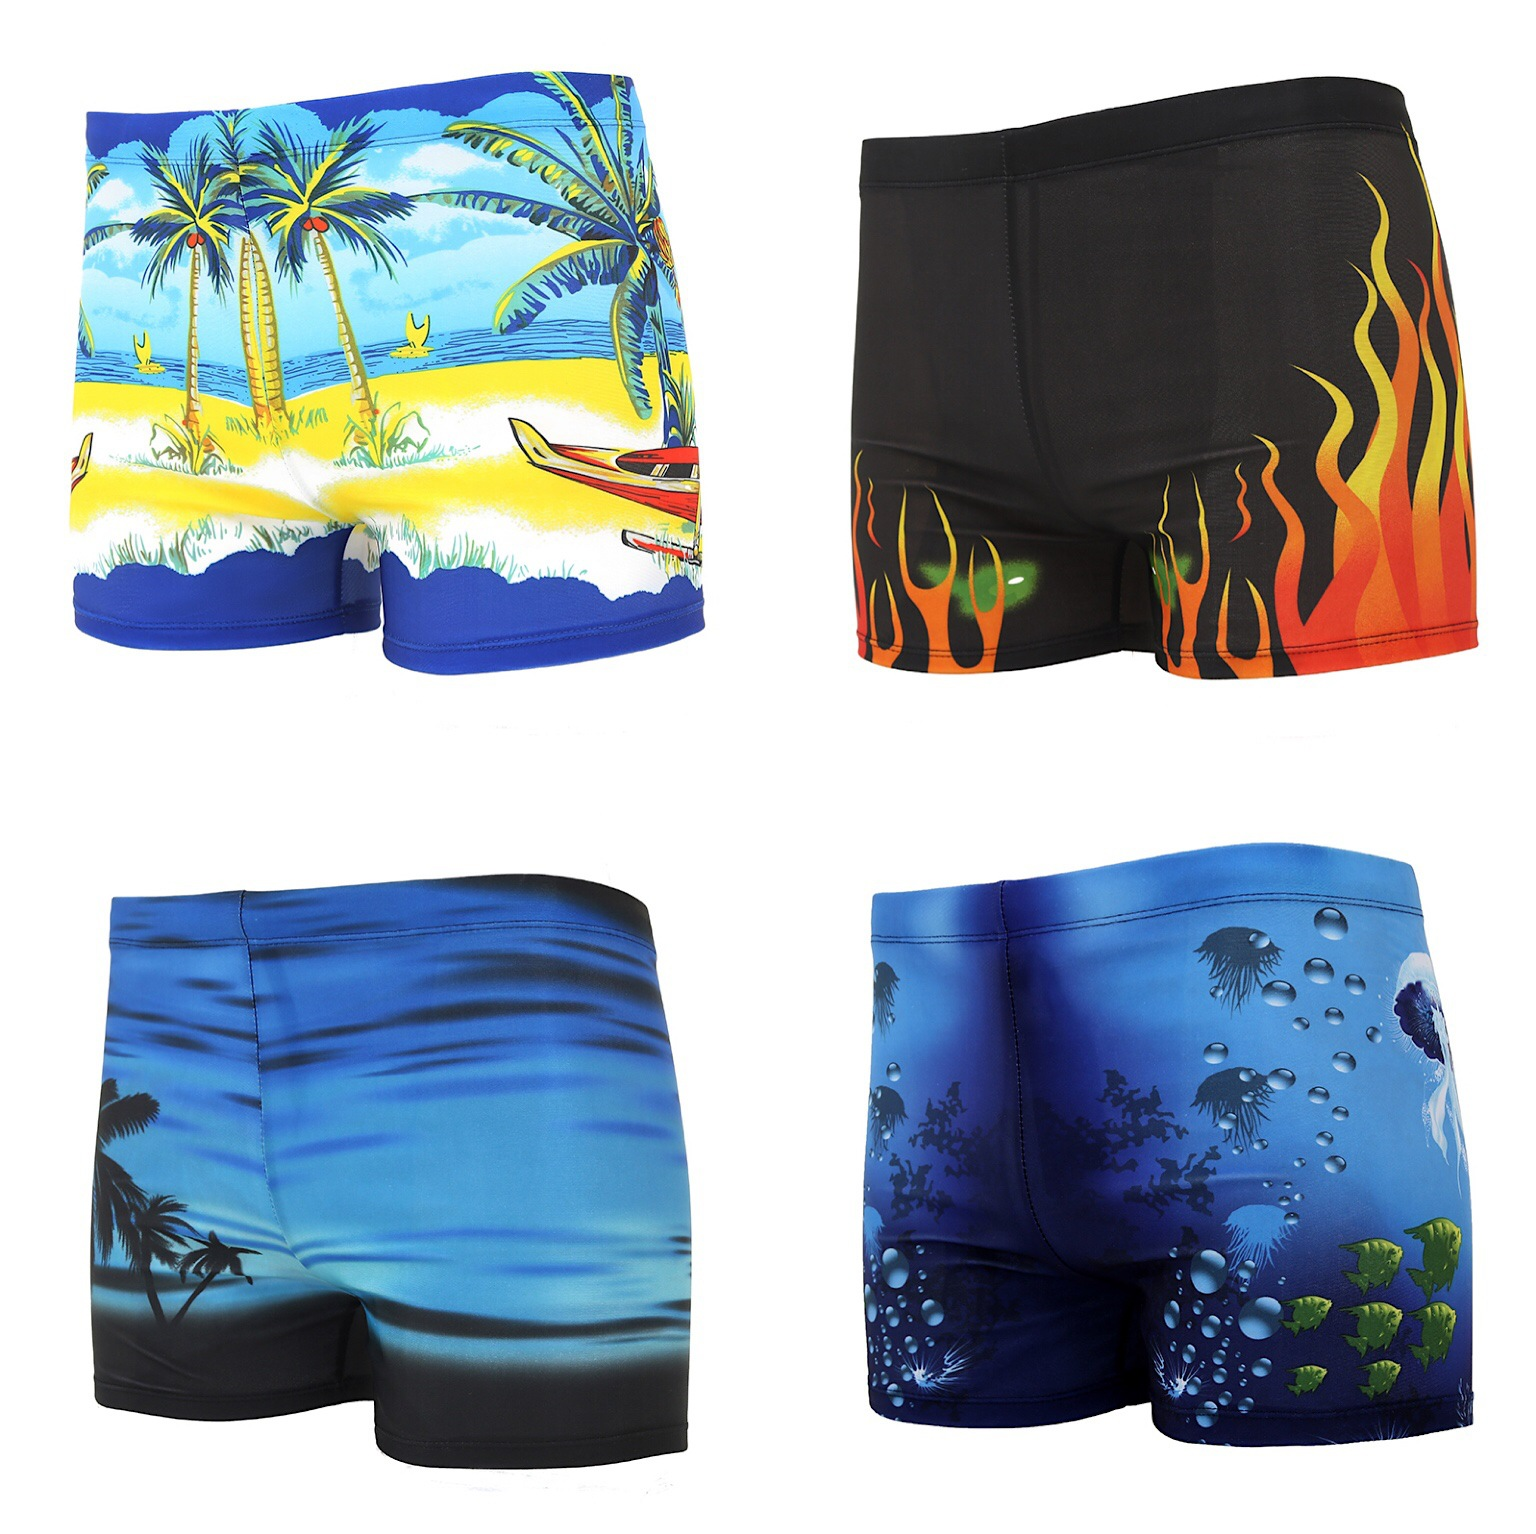 [Hot Selling] Adult MEN'S Swimming Trunks Large Size Printed Hot Springs Boxers Loose-Fit Quick-Dry Swimming Trunks